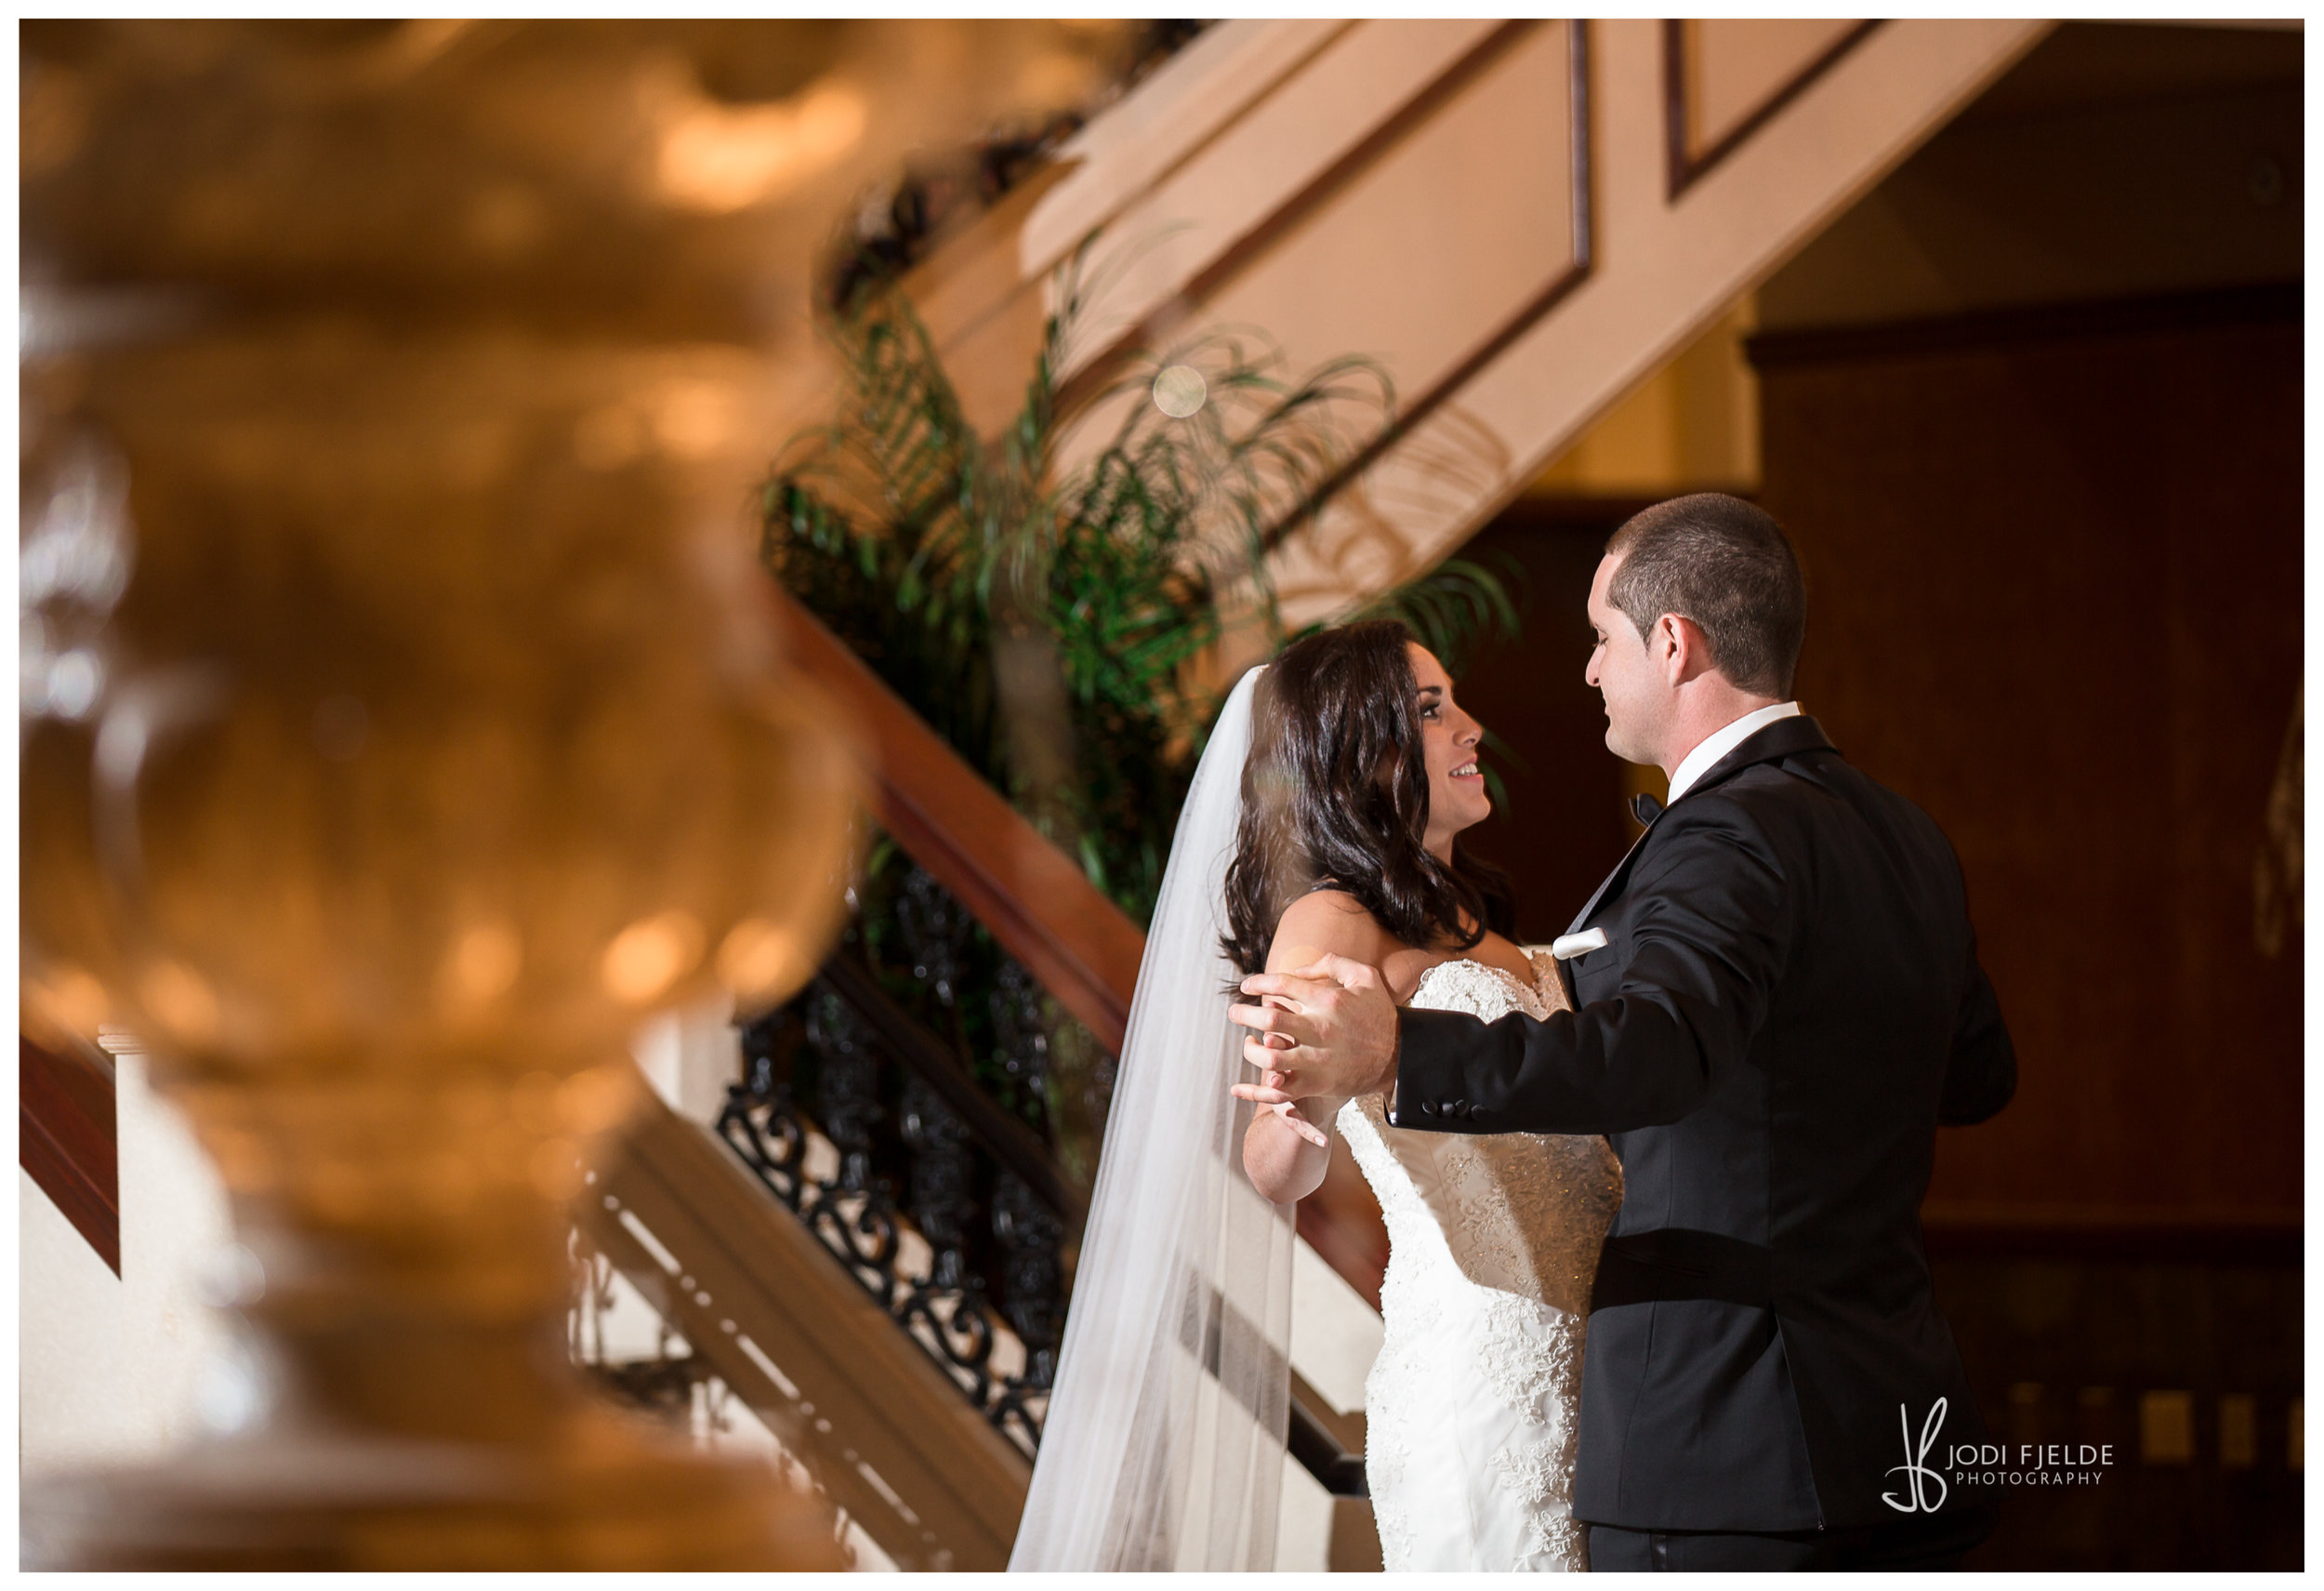 Fort-Lauderdale-Signature-grand-wedding-Paola-and-Max-married-9.jpg